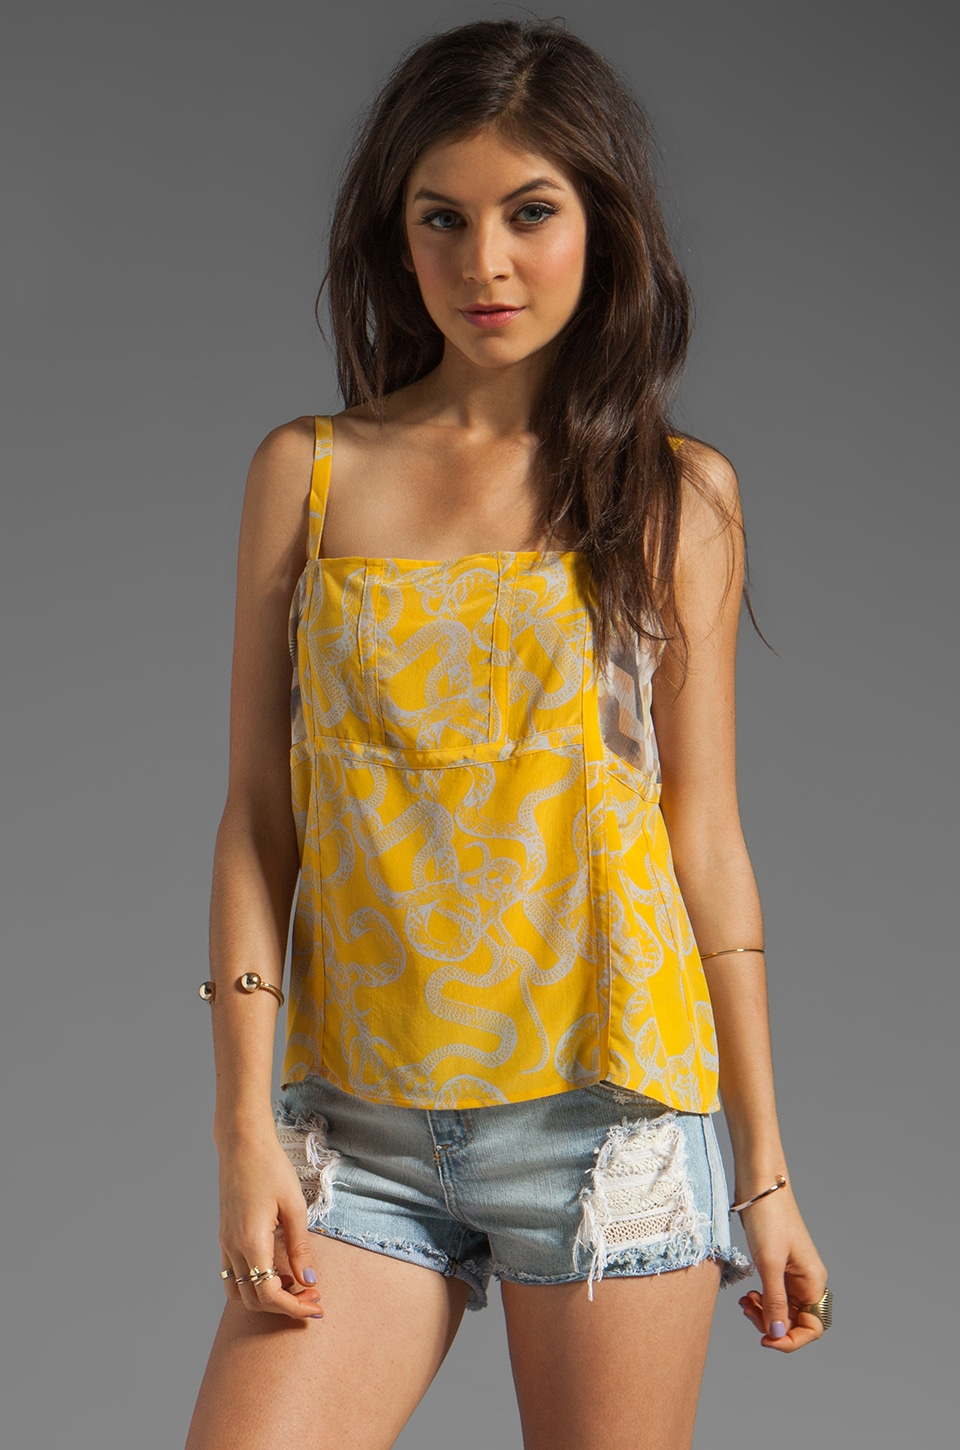 Winter Kate Genesis Tank in Skull Yellow/Butterflies Latte